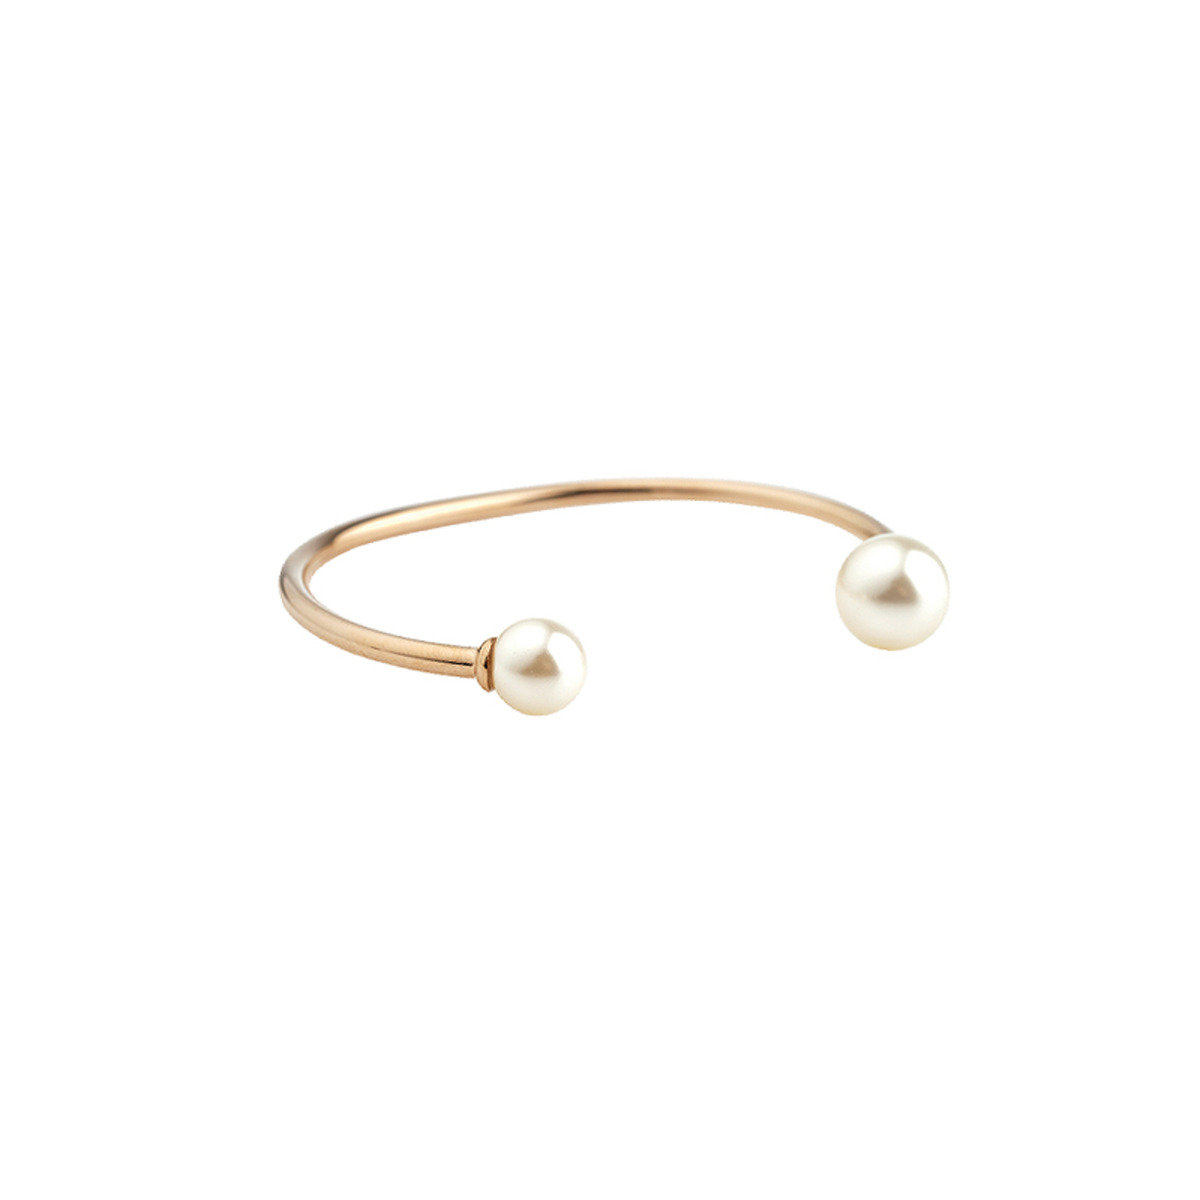 Pearl Moment open bangle